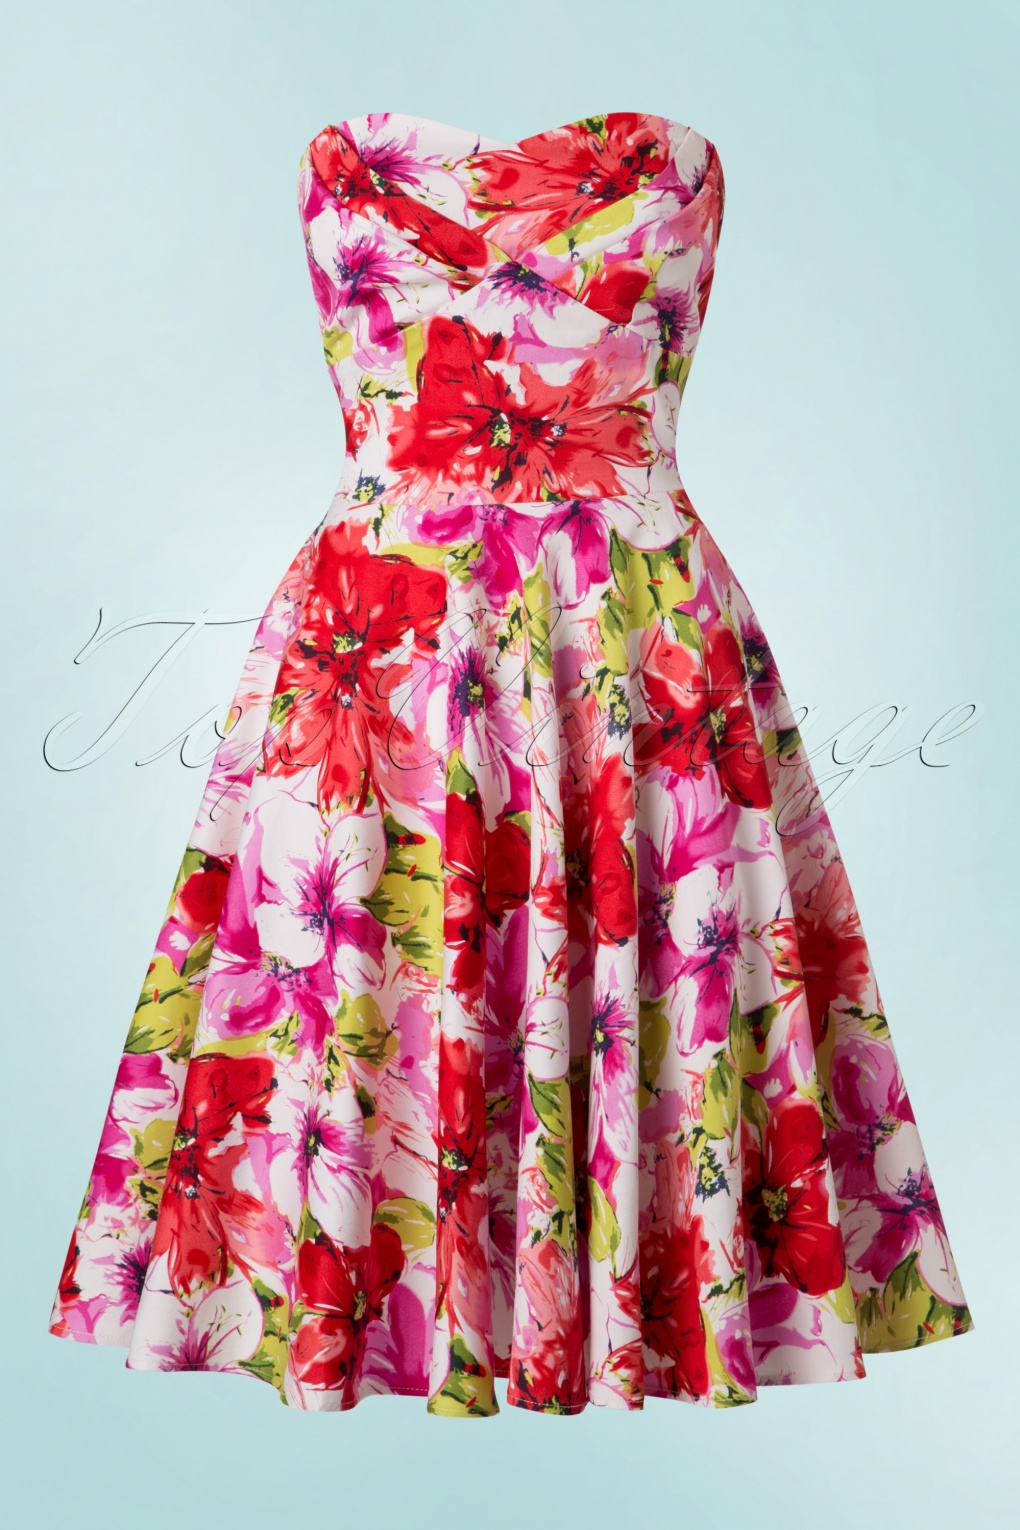 Dresses | Large fifties style dresses at TopVintage